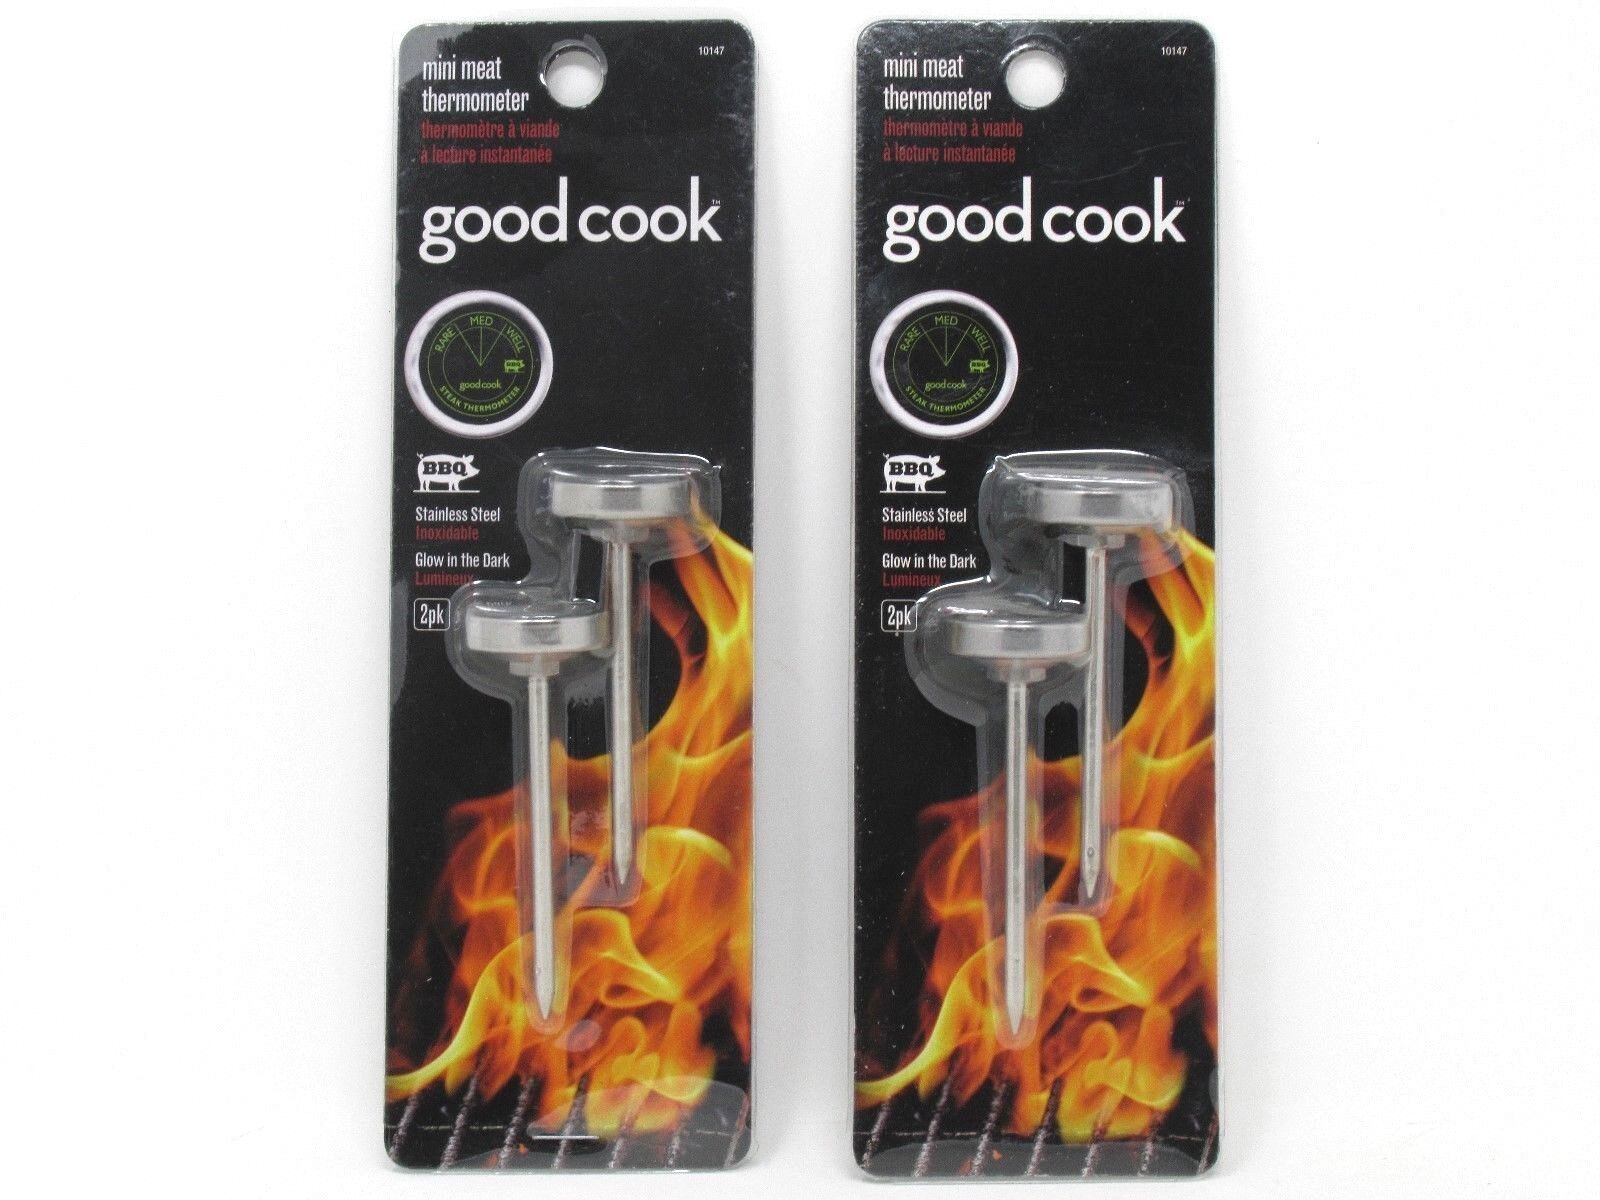 Good Cook Mini Meat Thermometer Glow in the Dark